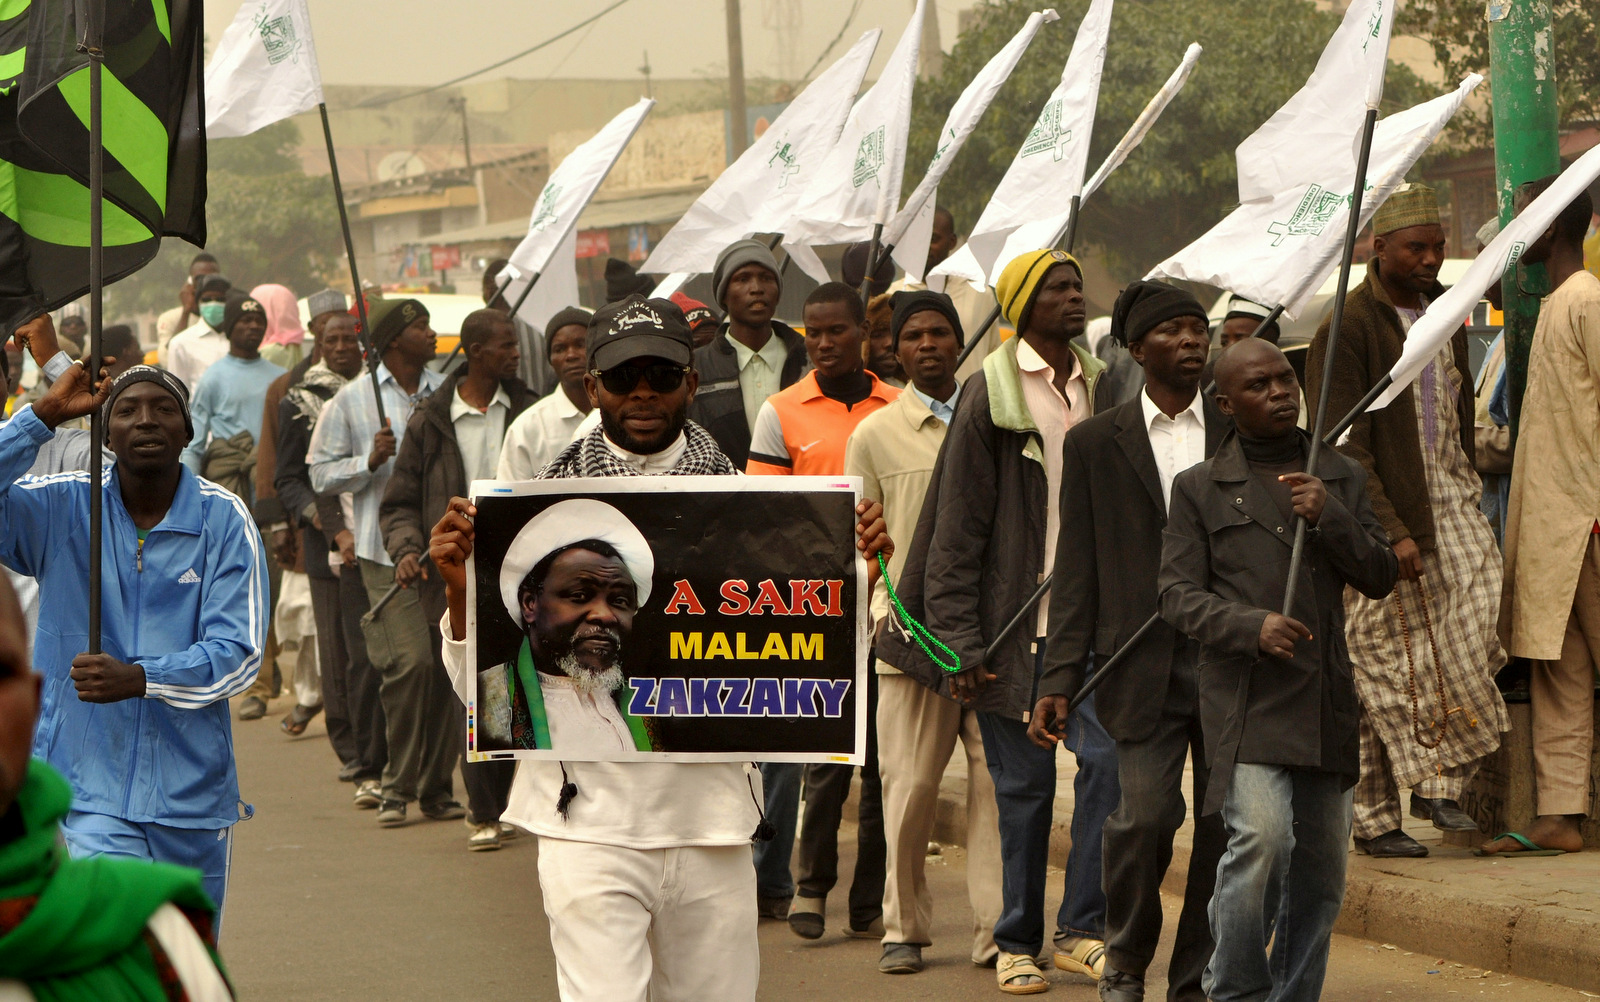 Police prevent Shi'ites from holding protest in Abuja